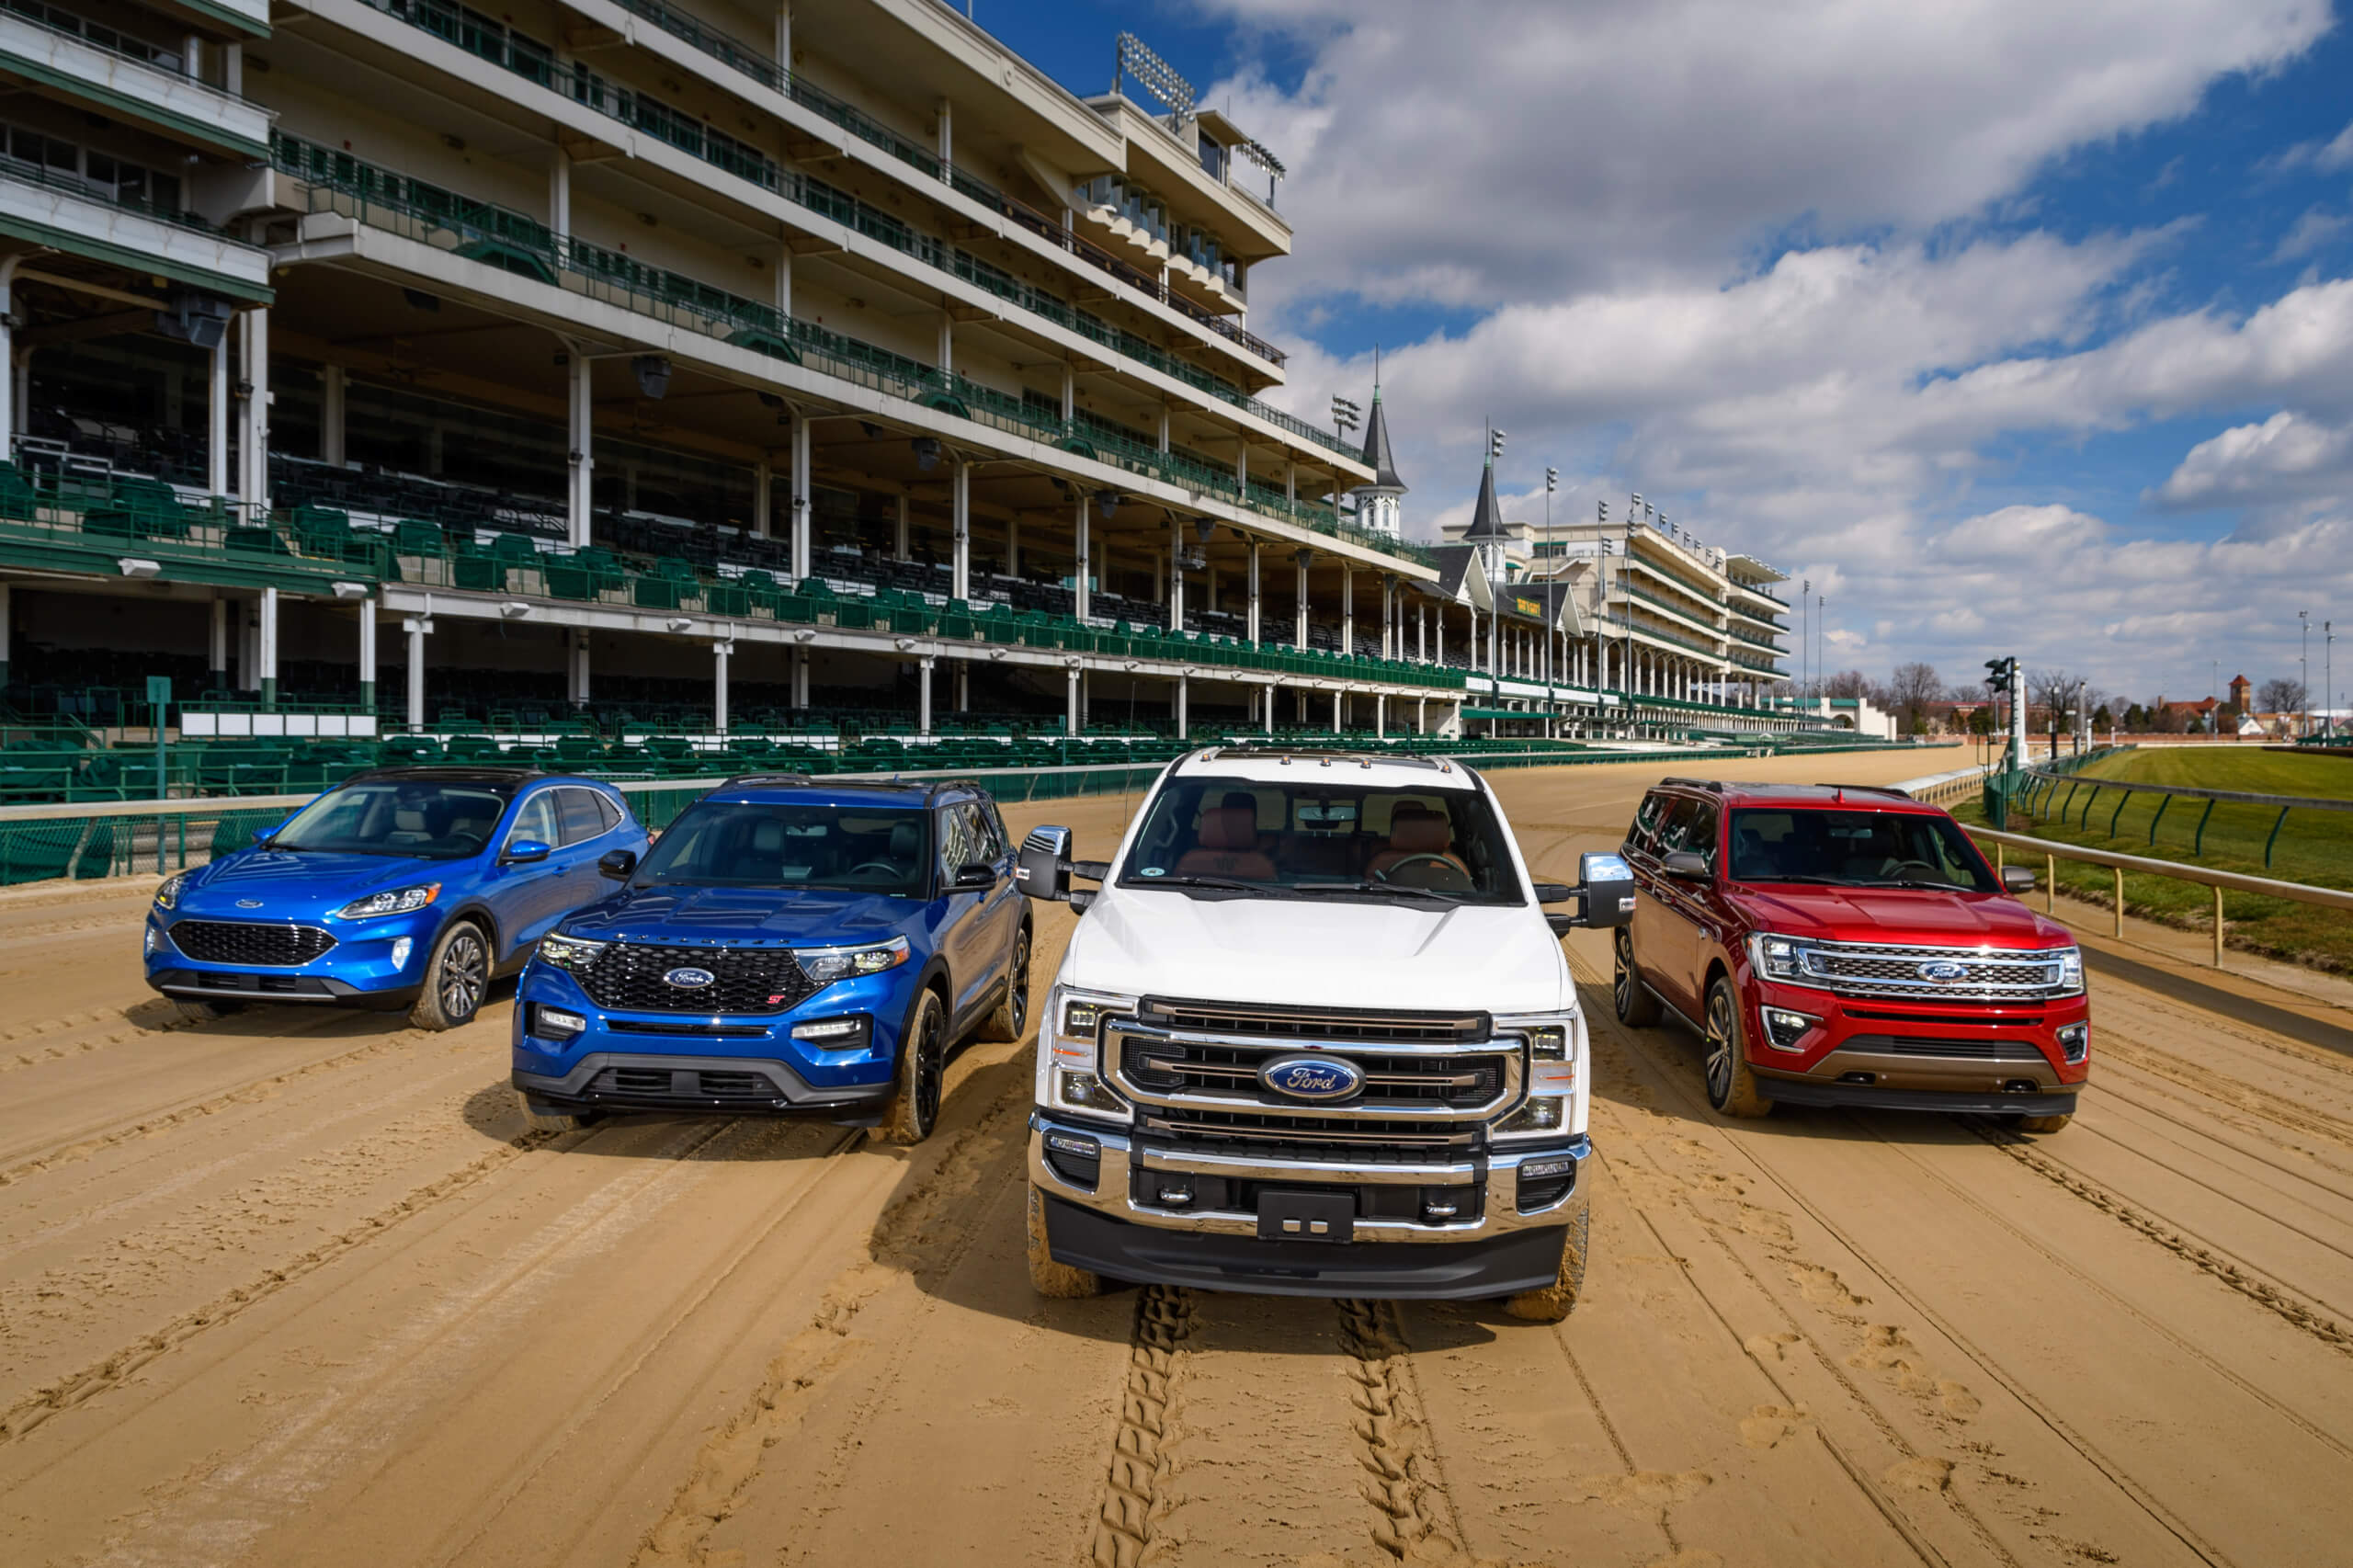 The 2020 Ford F-Series Super Duty is the featured vehicle for this year's 146th Kentucky Derby, held on May 2nd. (Courtesy of Ford)